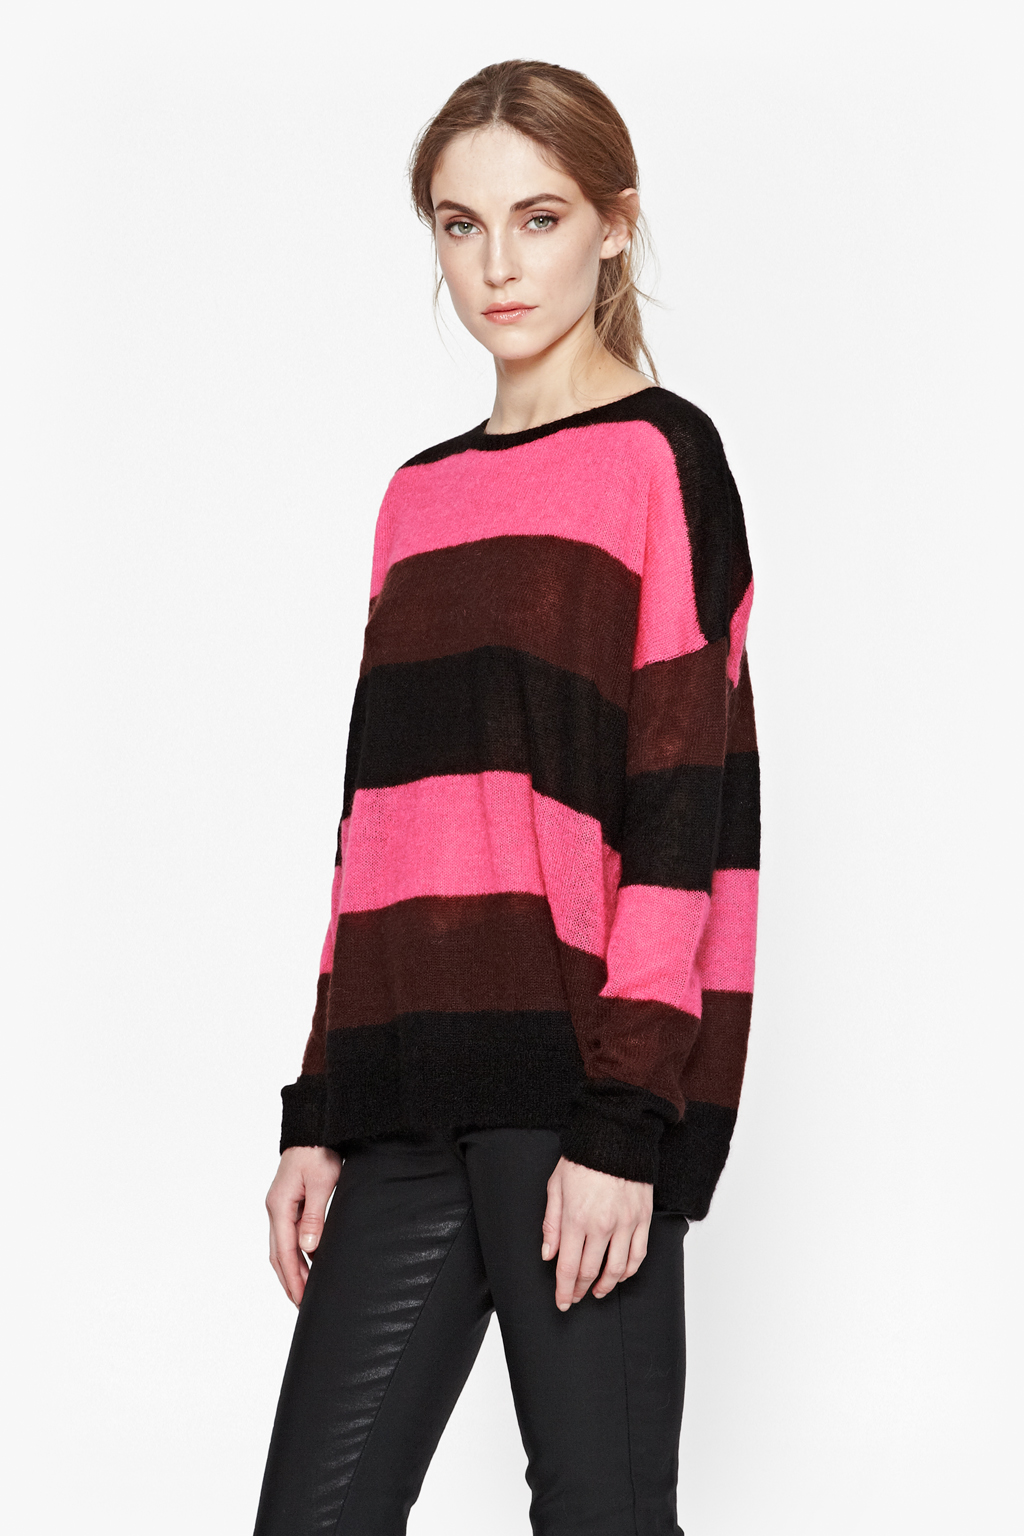 Browse our full Jumpers and Cardigans range. This site uses cookies to provide and improve your shopping experience. If you want to benefit from this improved service, please opt-in.